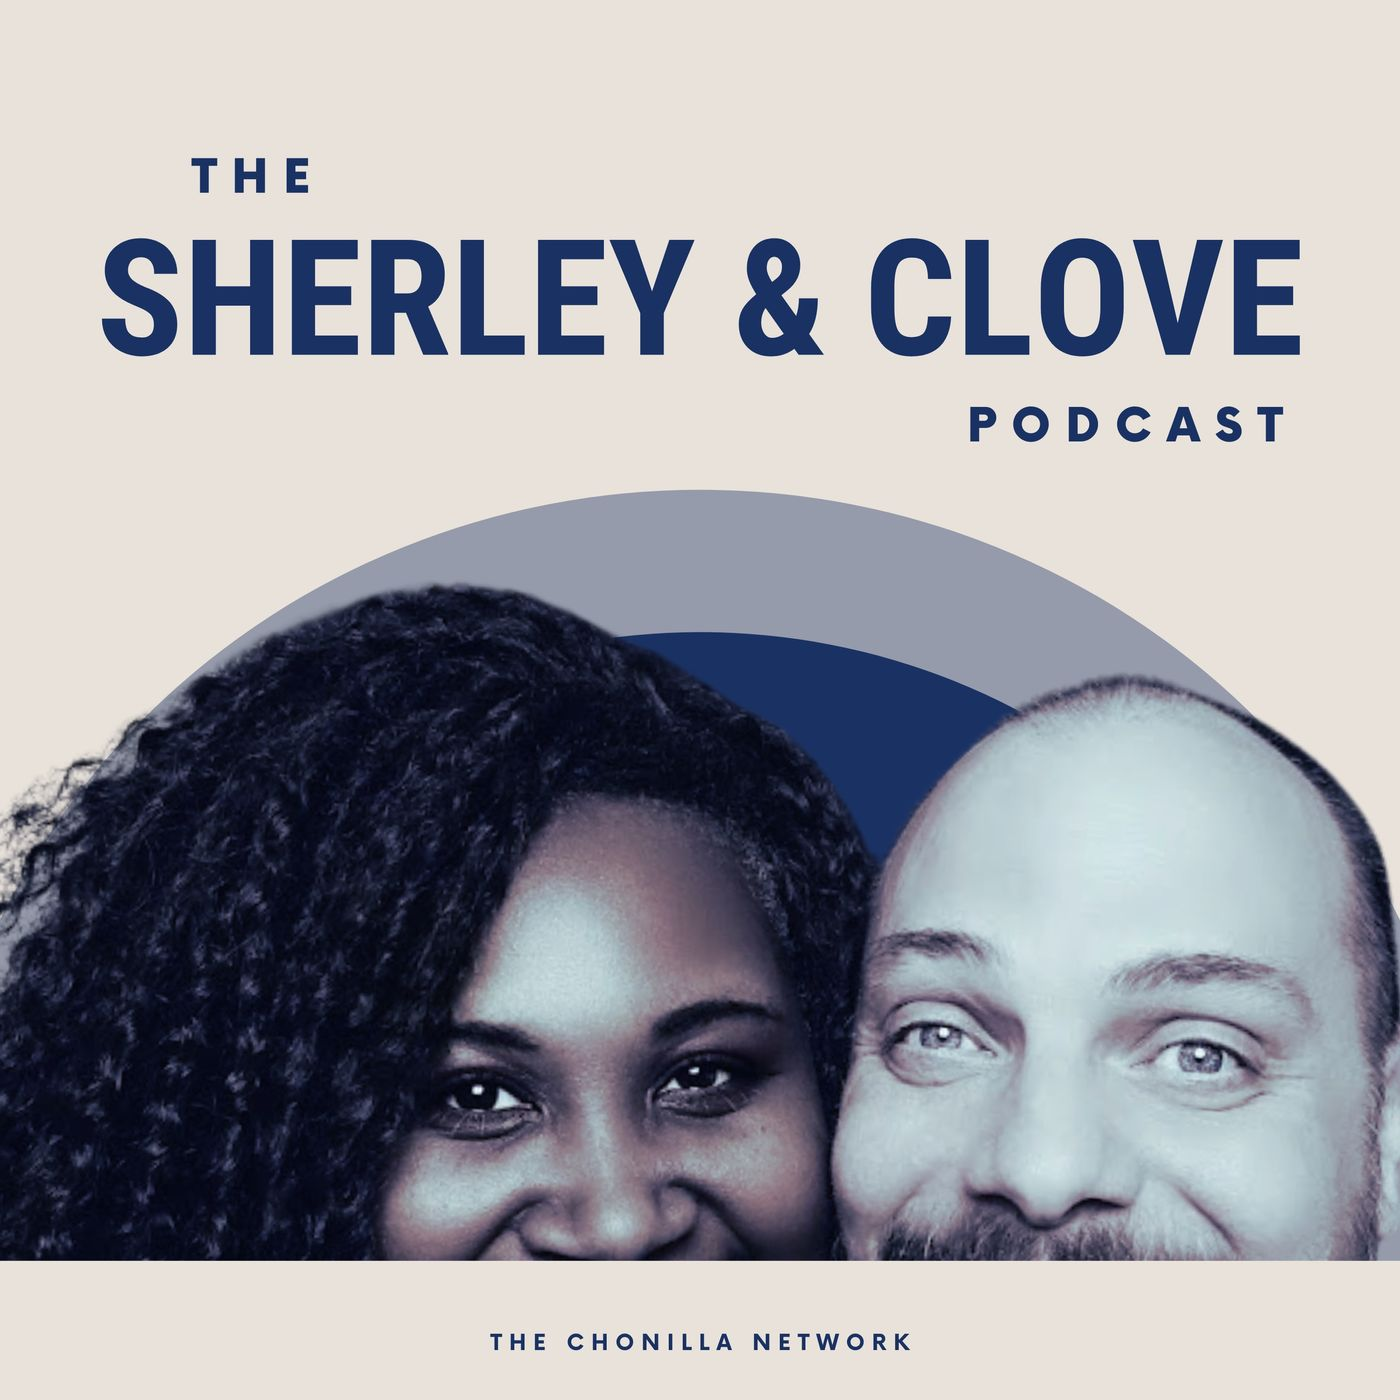 The Sherley and Clove Podcast